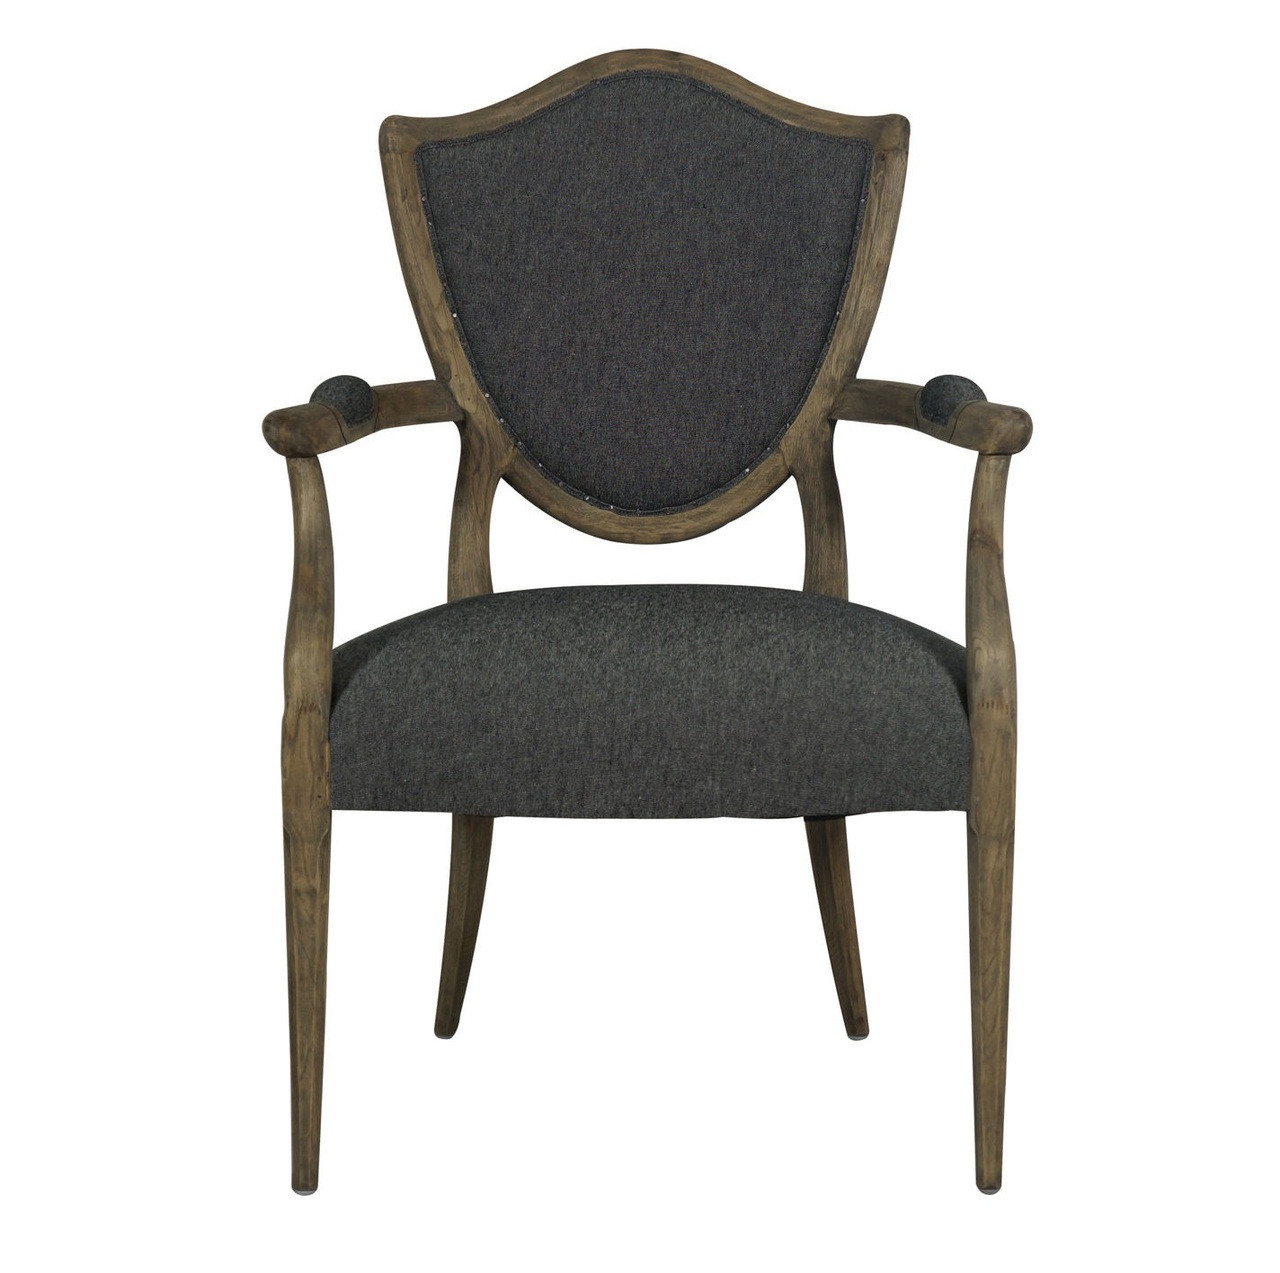 bergere dining chairs hanging egg chair with stand nz lenny weathered oak french zin home